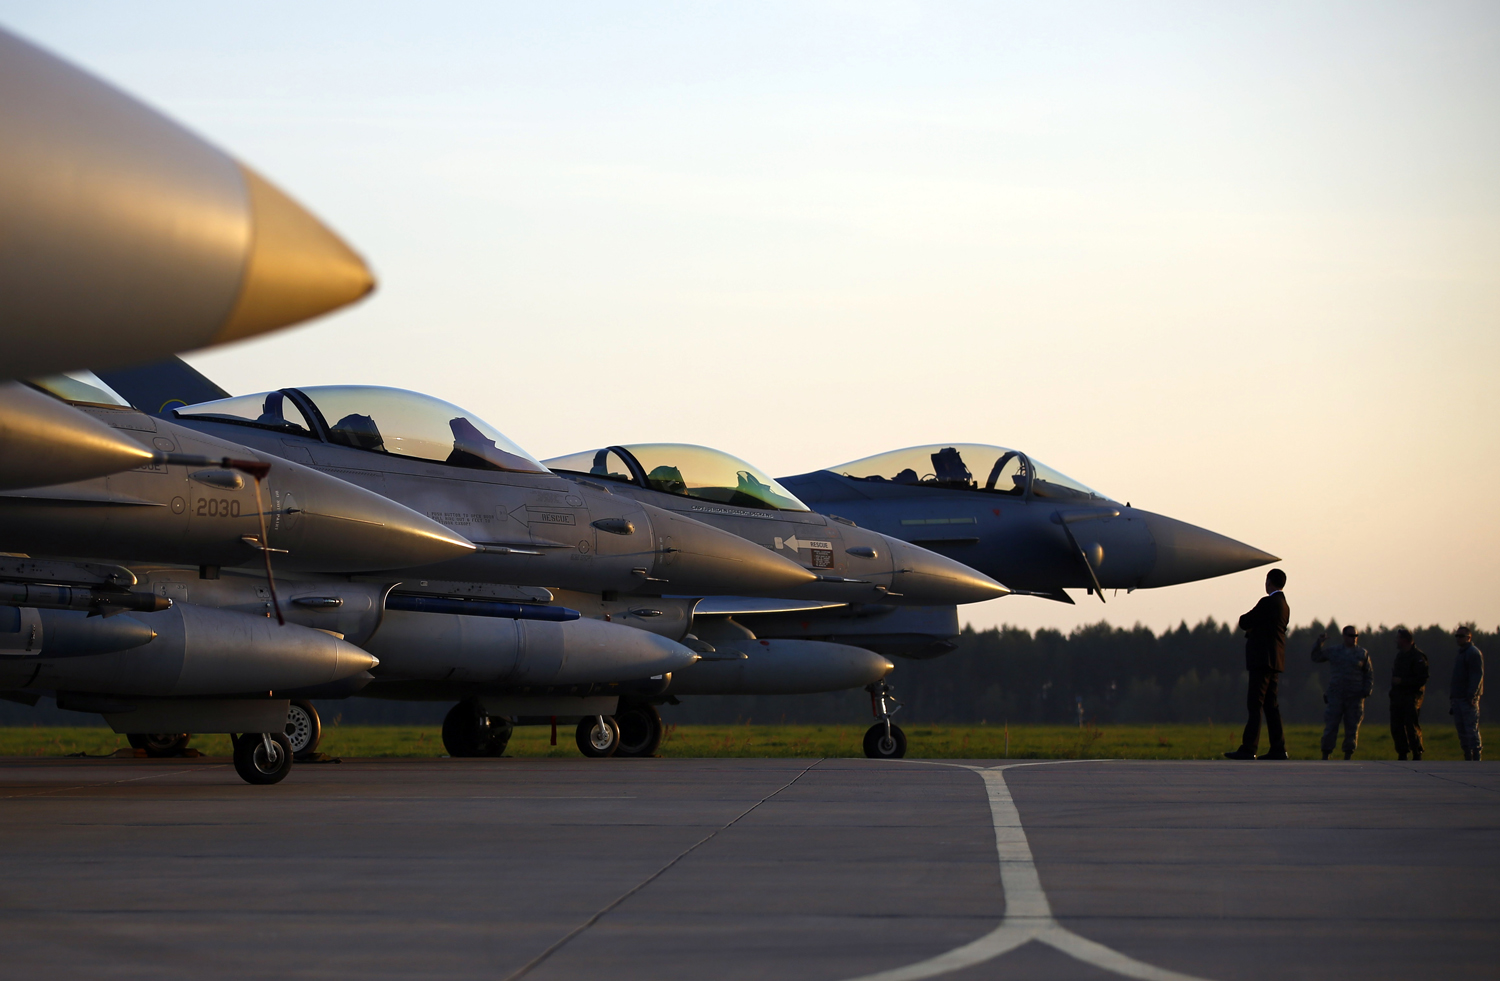 Military aircraft are seen on the tarmac during a visit by the new NATO Secretary General Jens Stoltenberg of Norway at Lask Air Base, in Poland, on Oct. 6, 2014